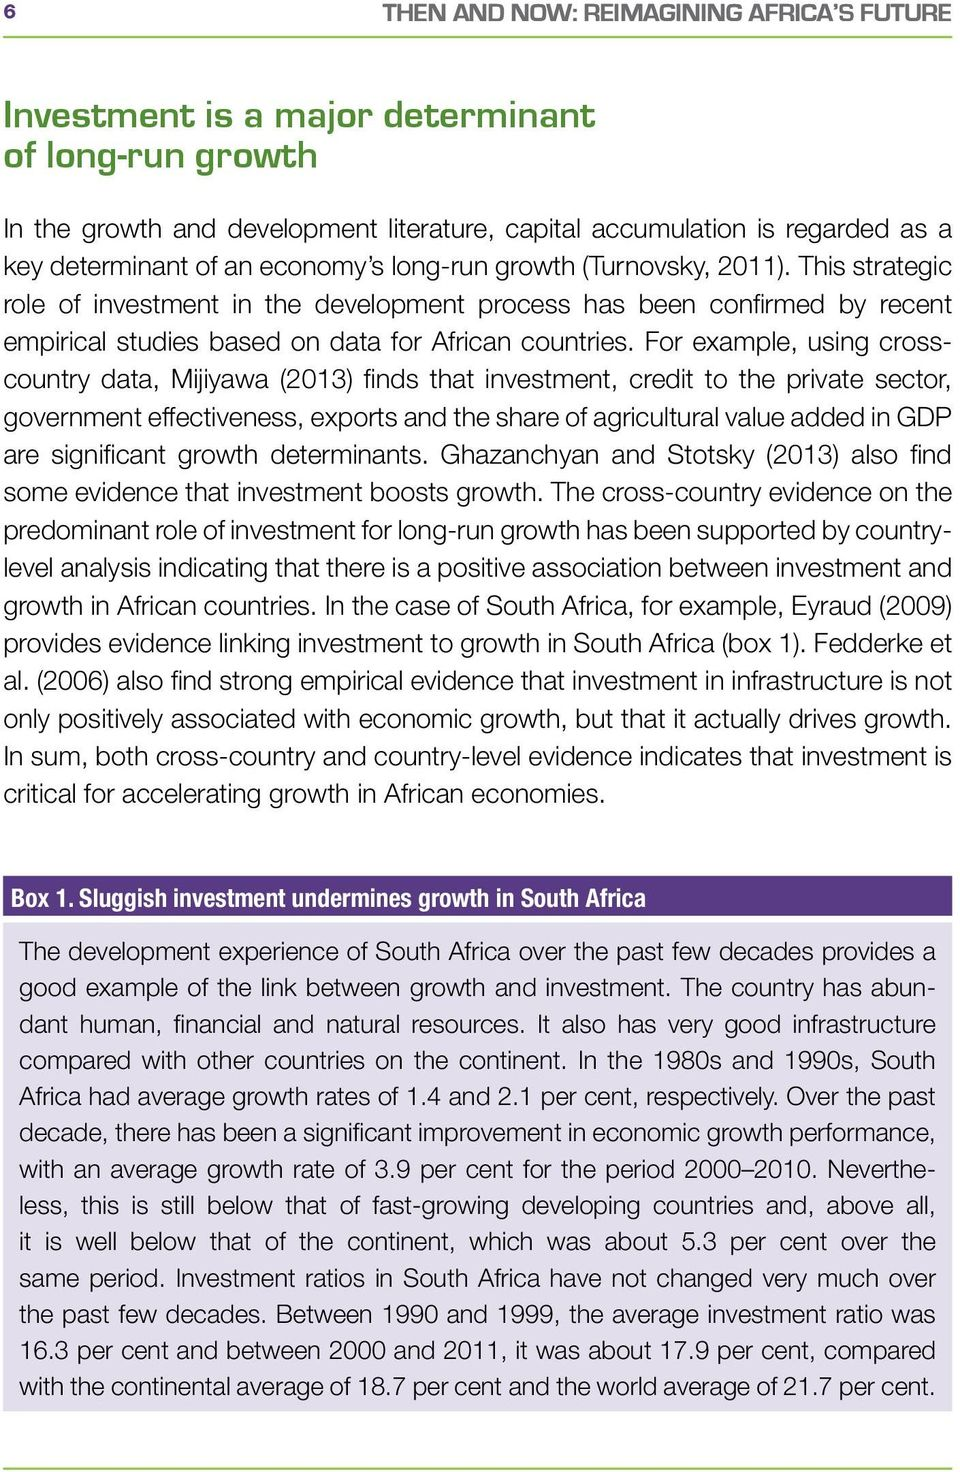 For example, using crosscountry data, Mijiyawa (2013) finds that investment, credit to the private sector, government effectiveness, exports and the share of agricultural value added in GDP are